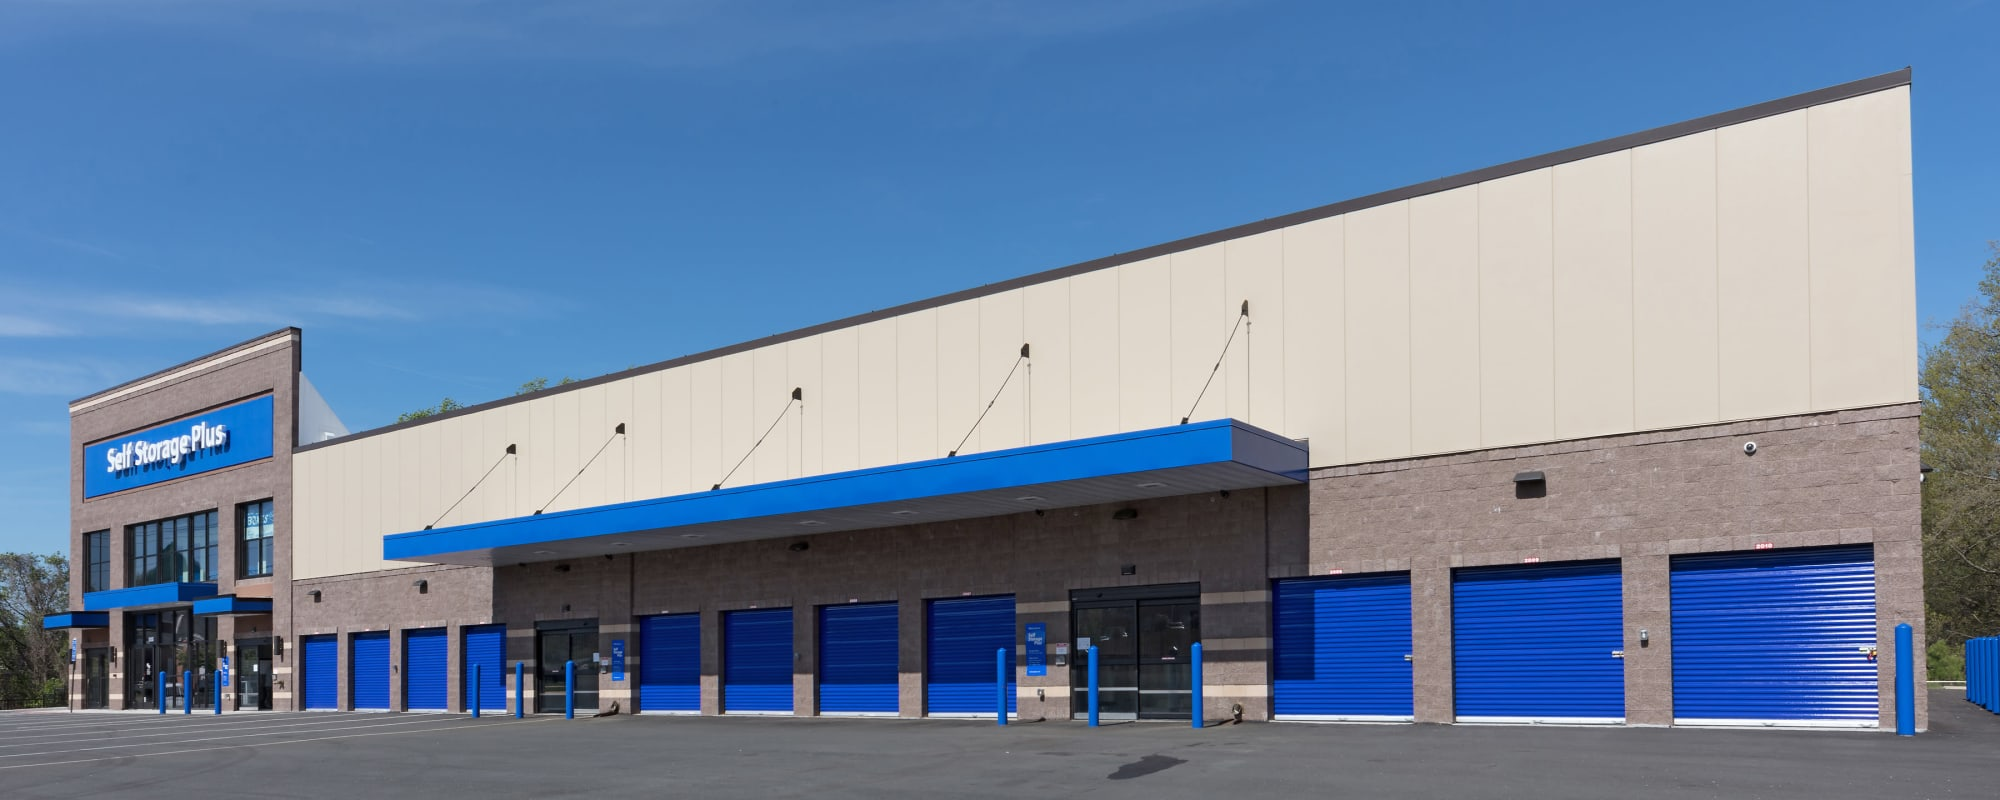 Self Storage Units Near Laurel Maryland Dandk Organizer